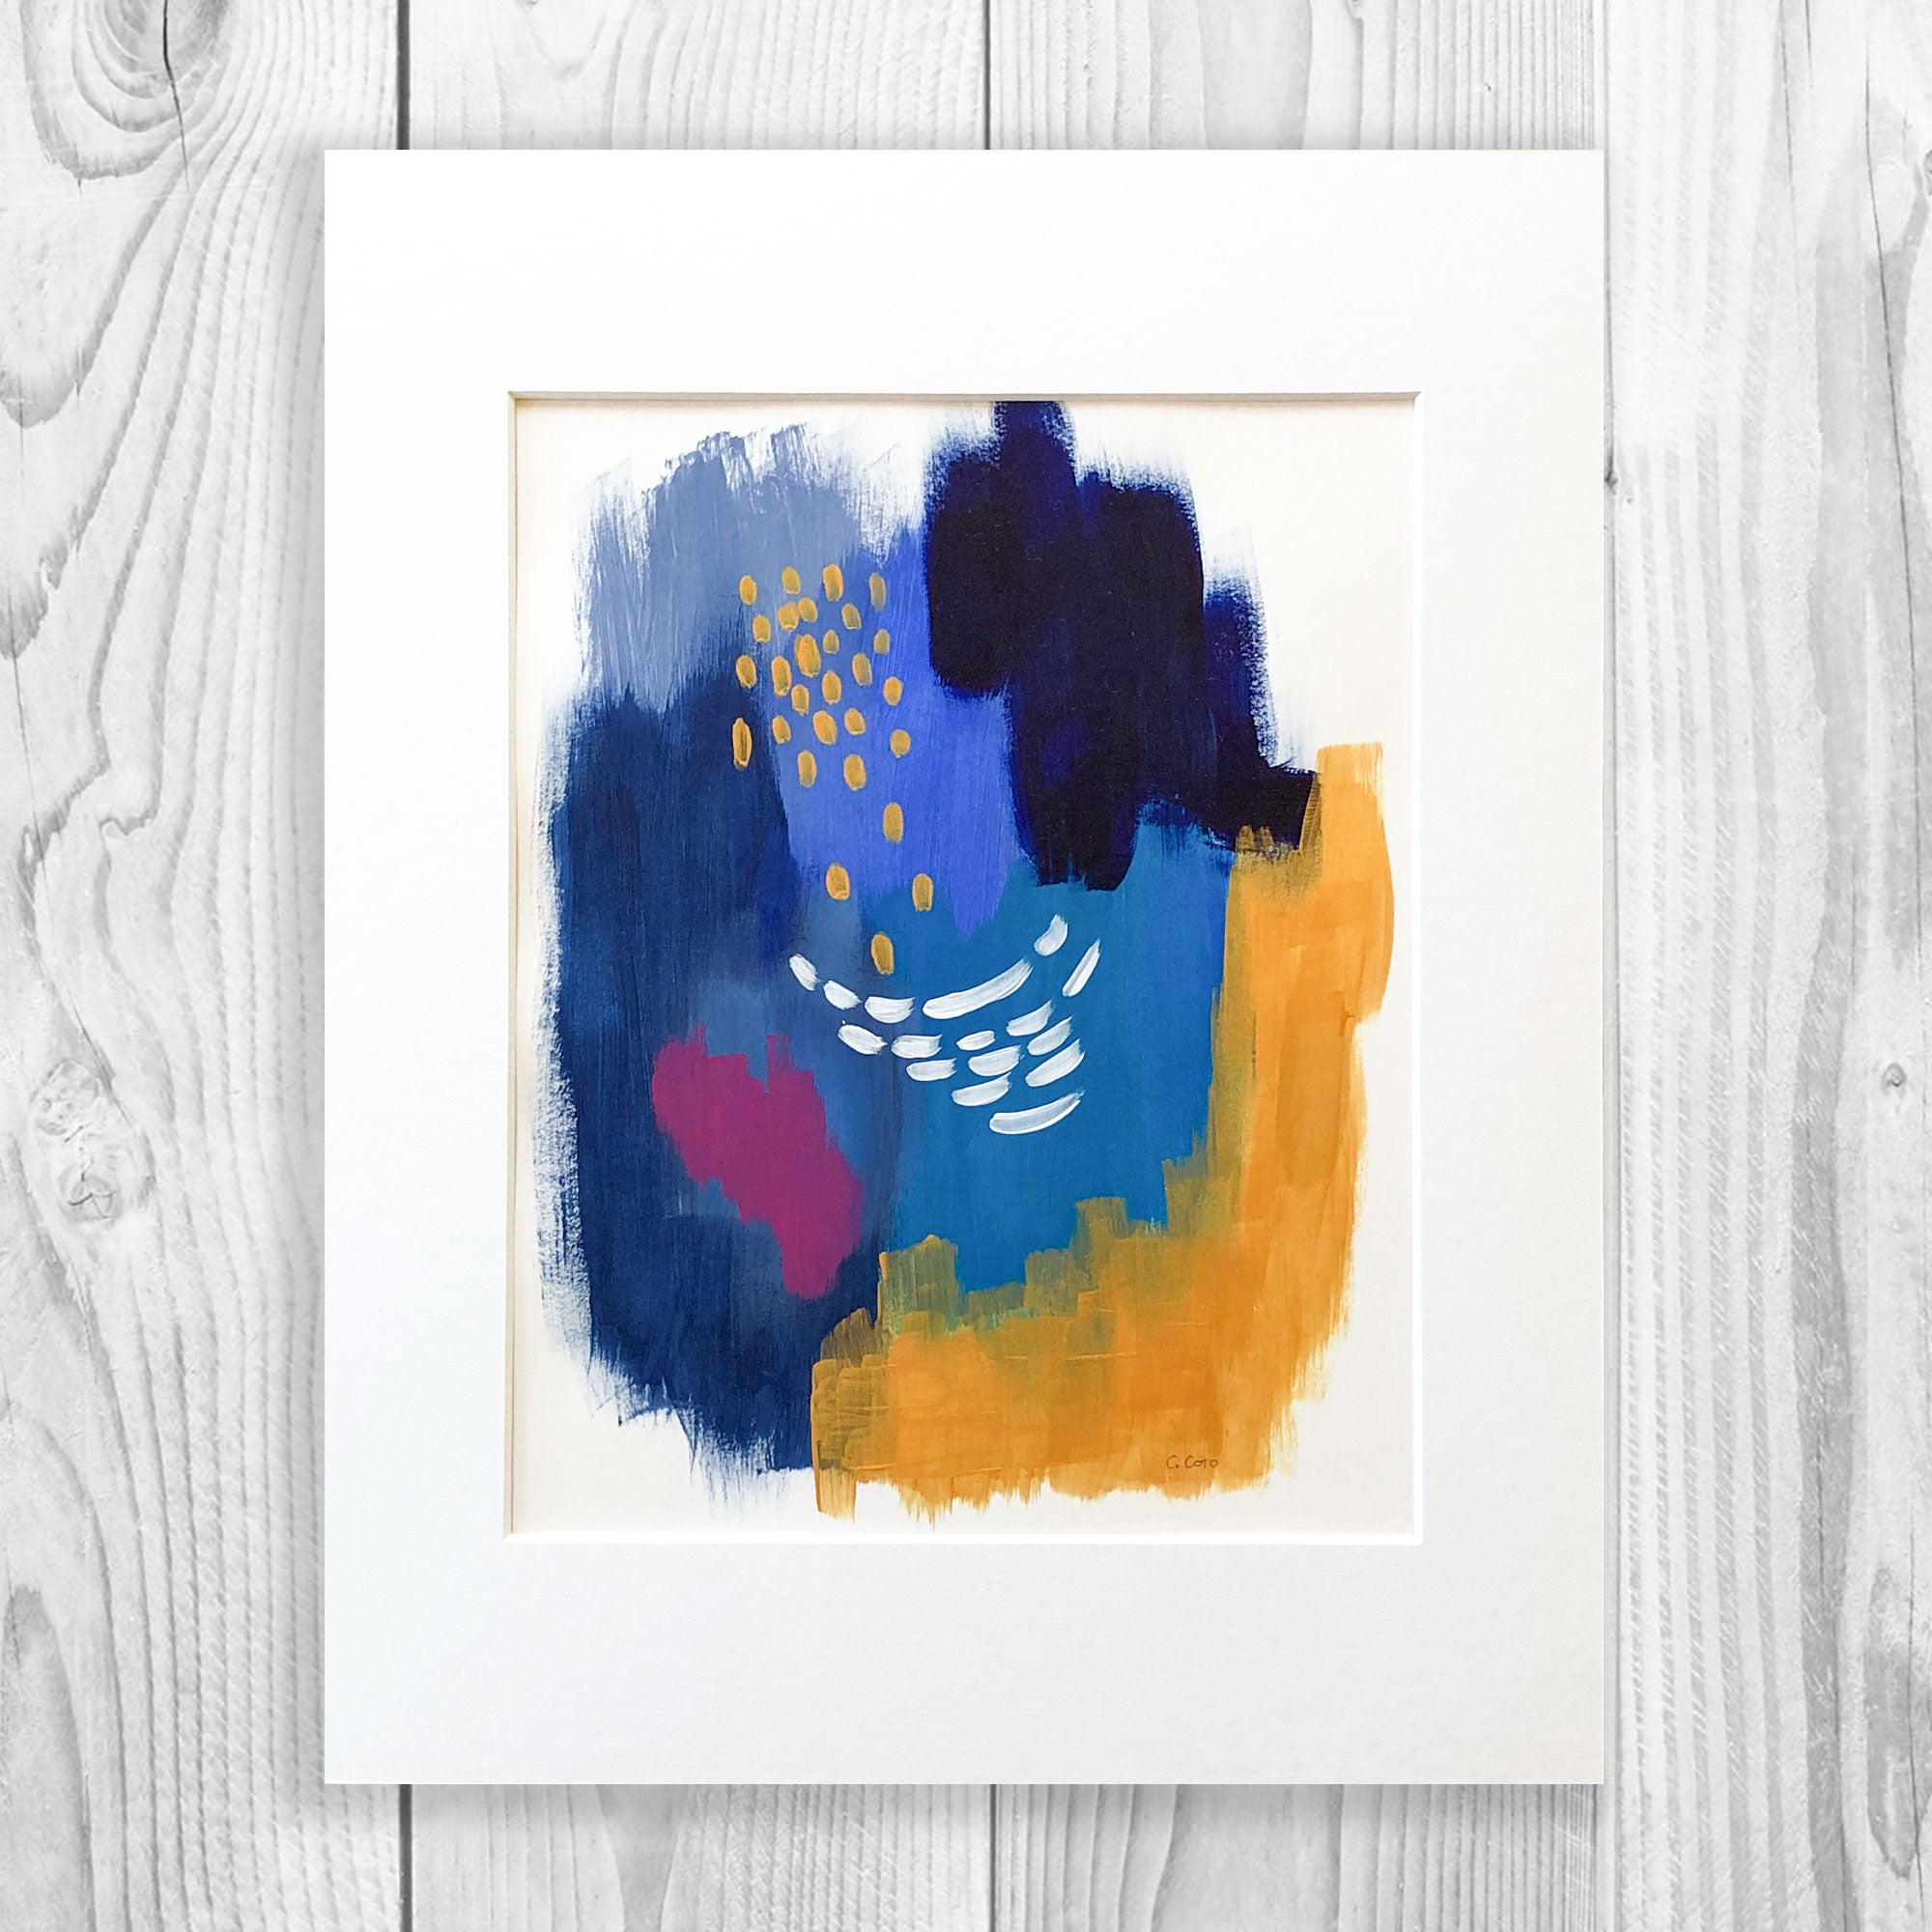 Abstract VIII - Unframed, Matted to Standard Frame Size